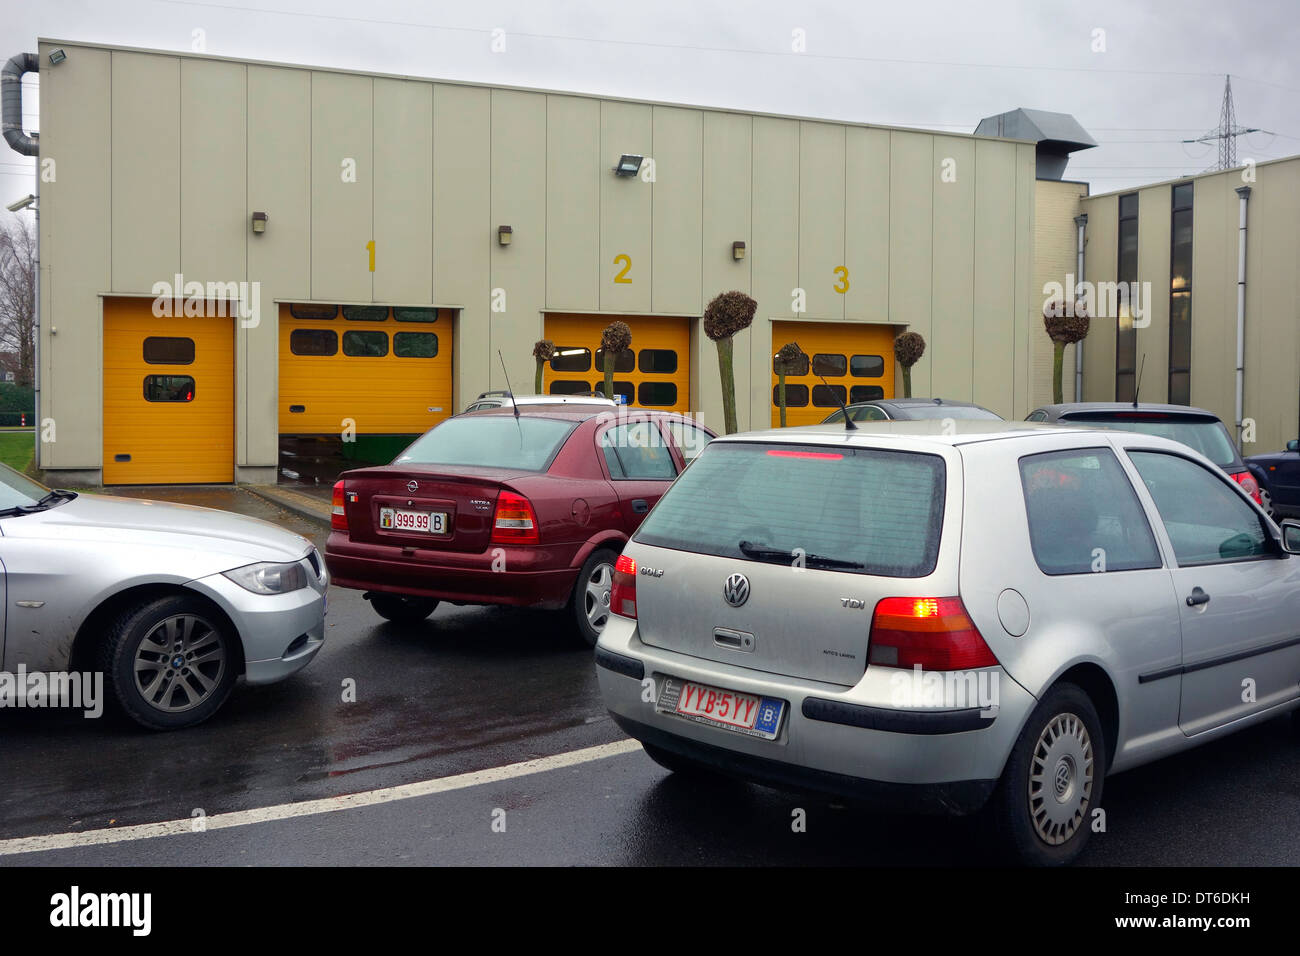 Belgian cars queuing in front of SBAT / MOT testing centre for a yearly motor vehicle inspection in Belgium - Stock Image